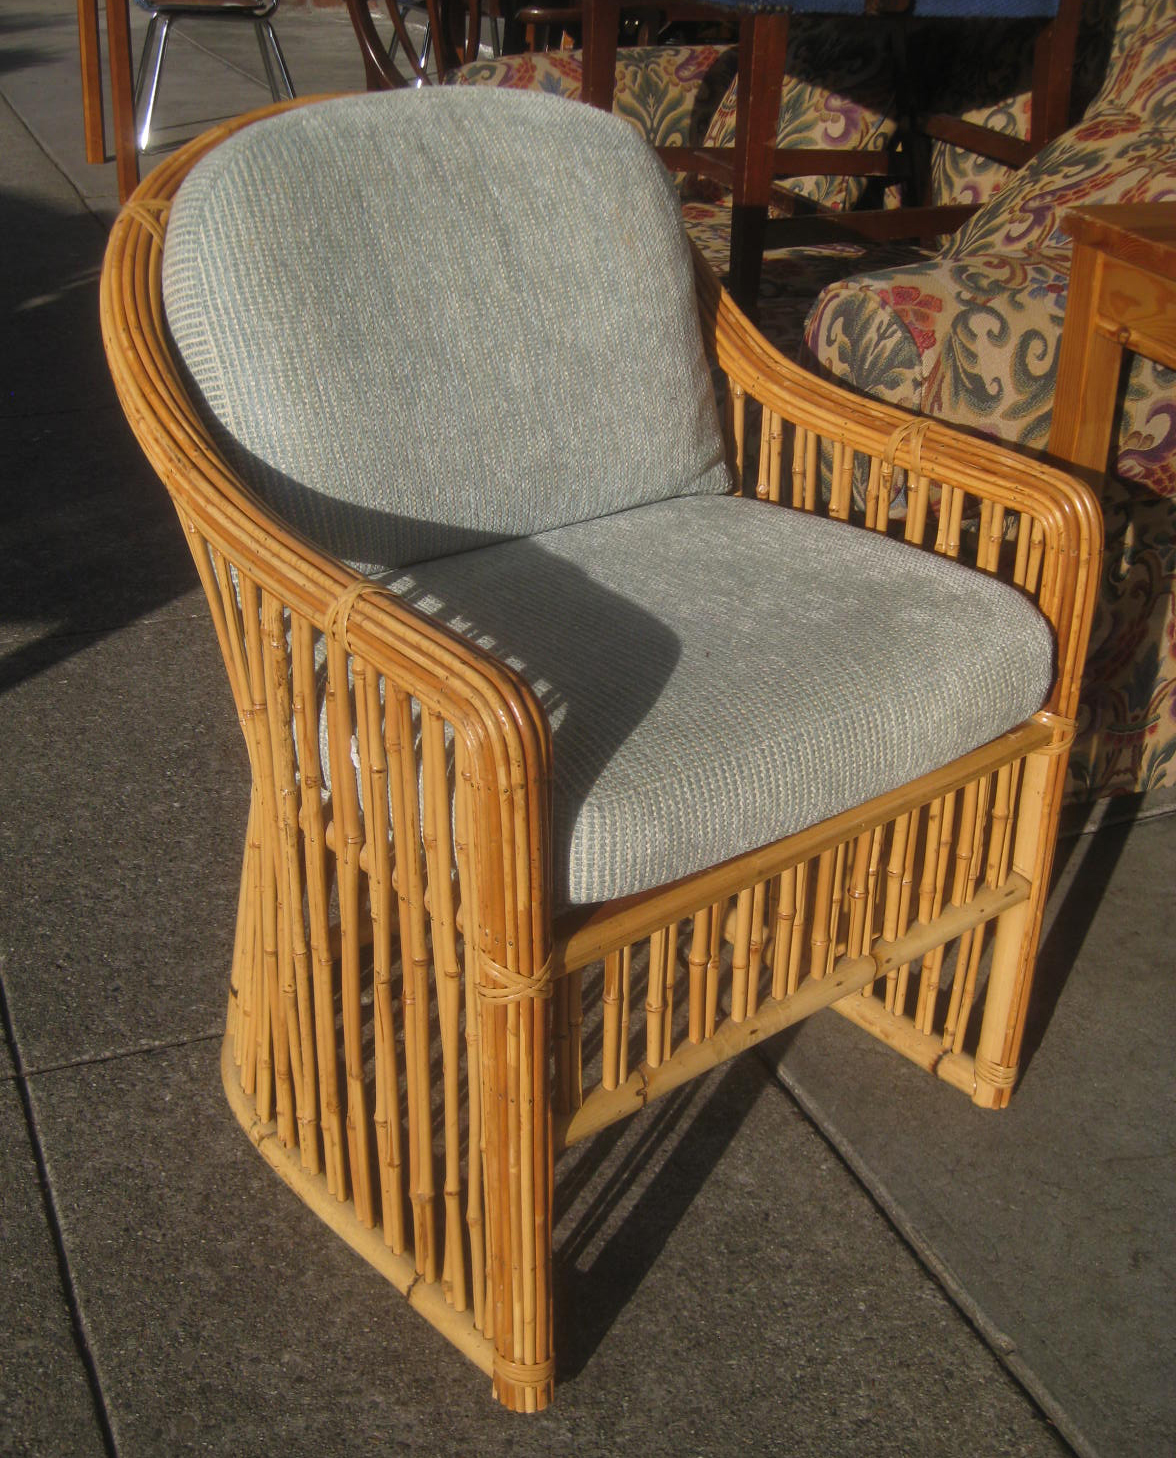 Uhuru Furniture Collectibles Sold Small Wicker Chair